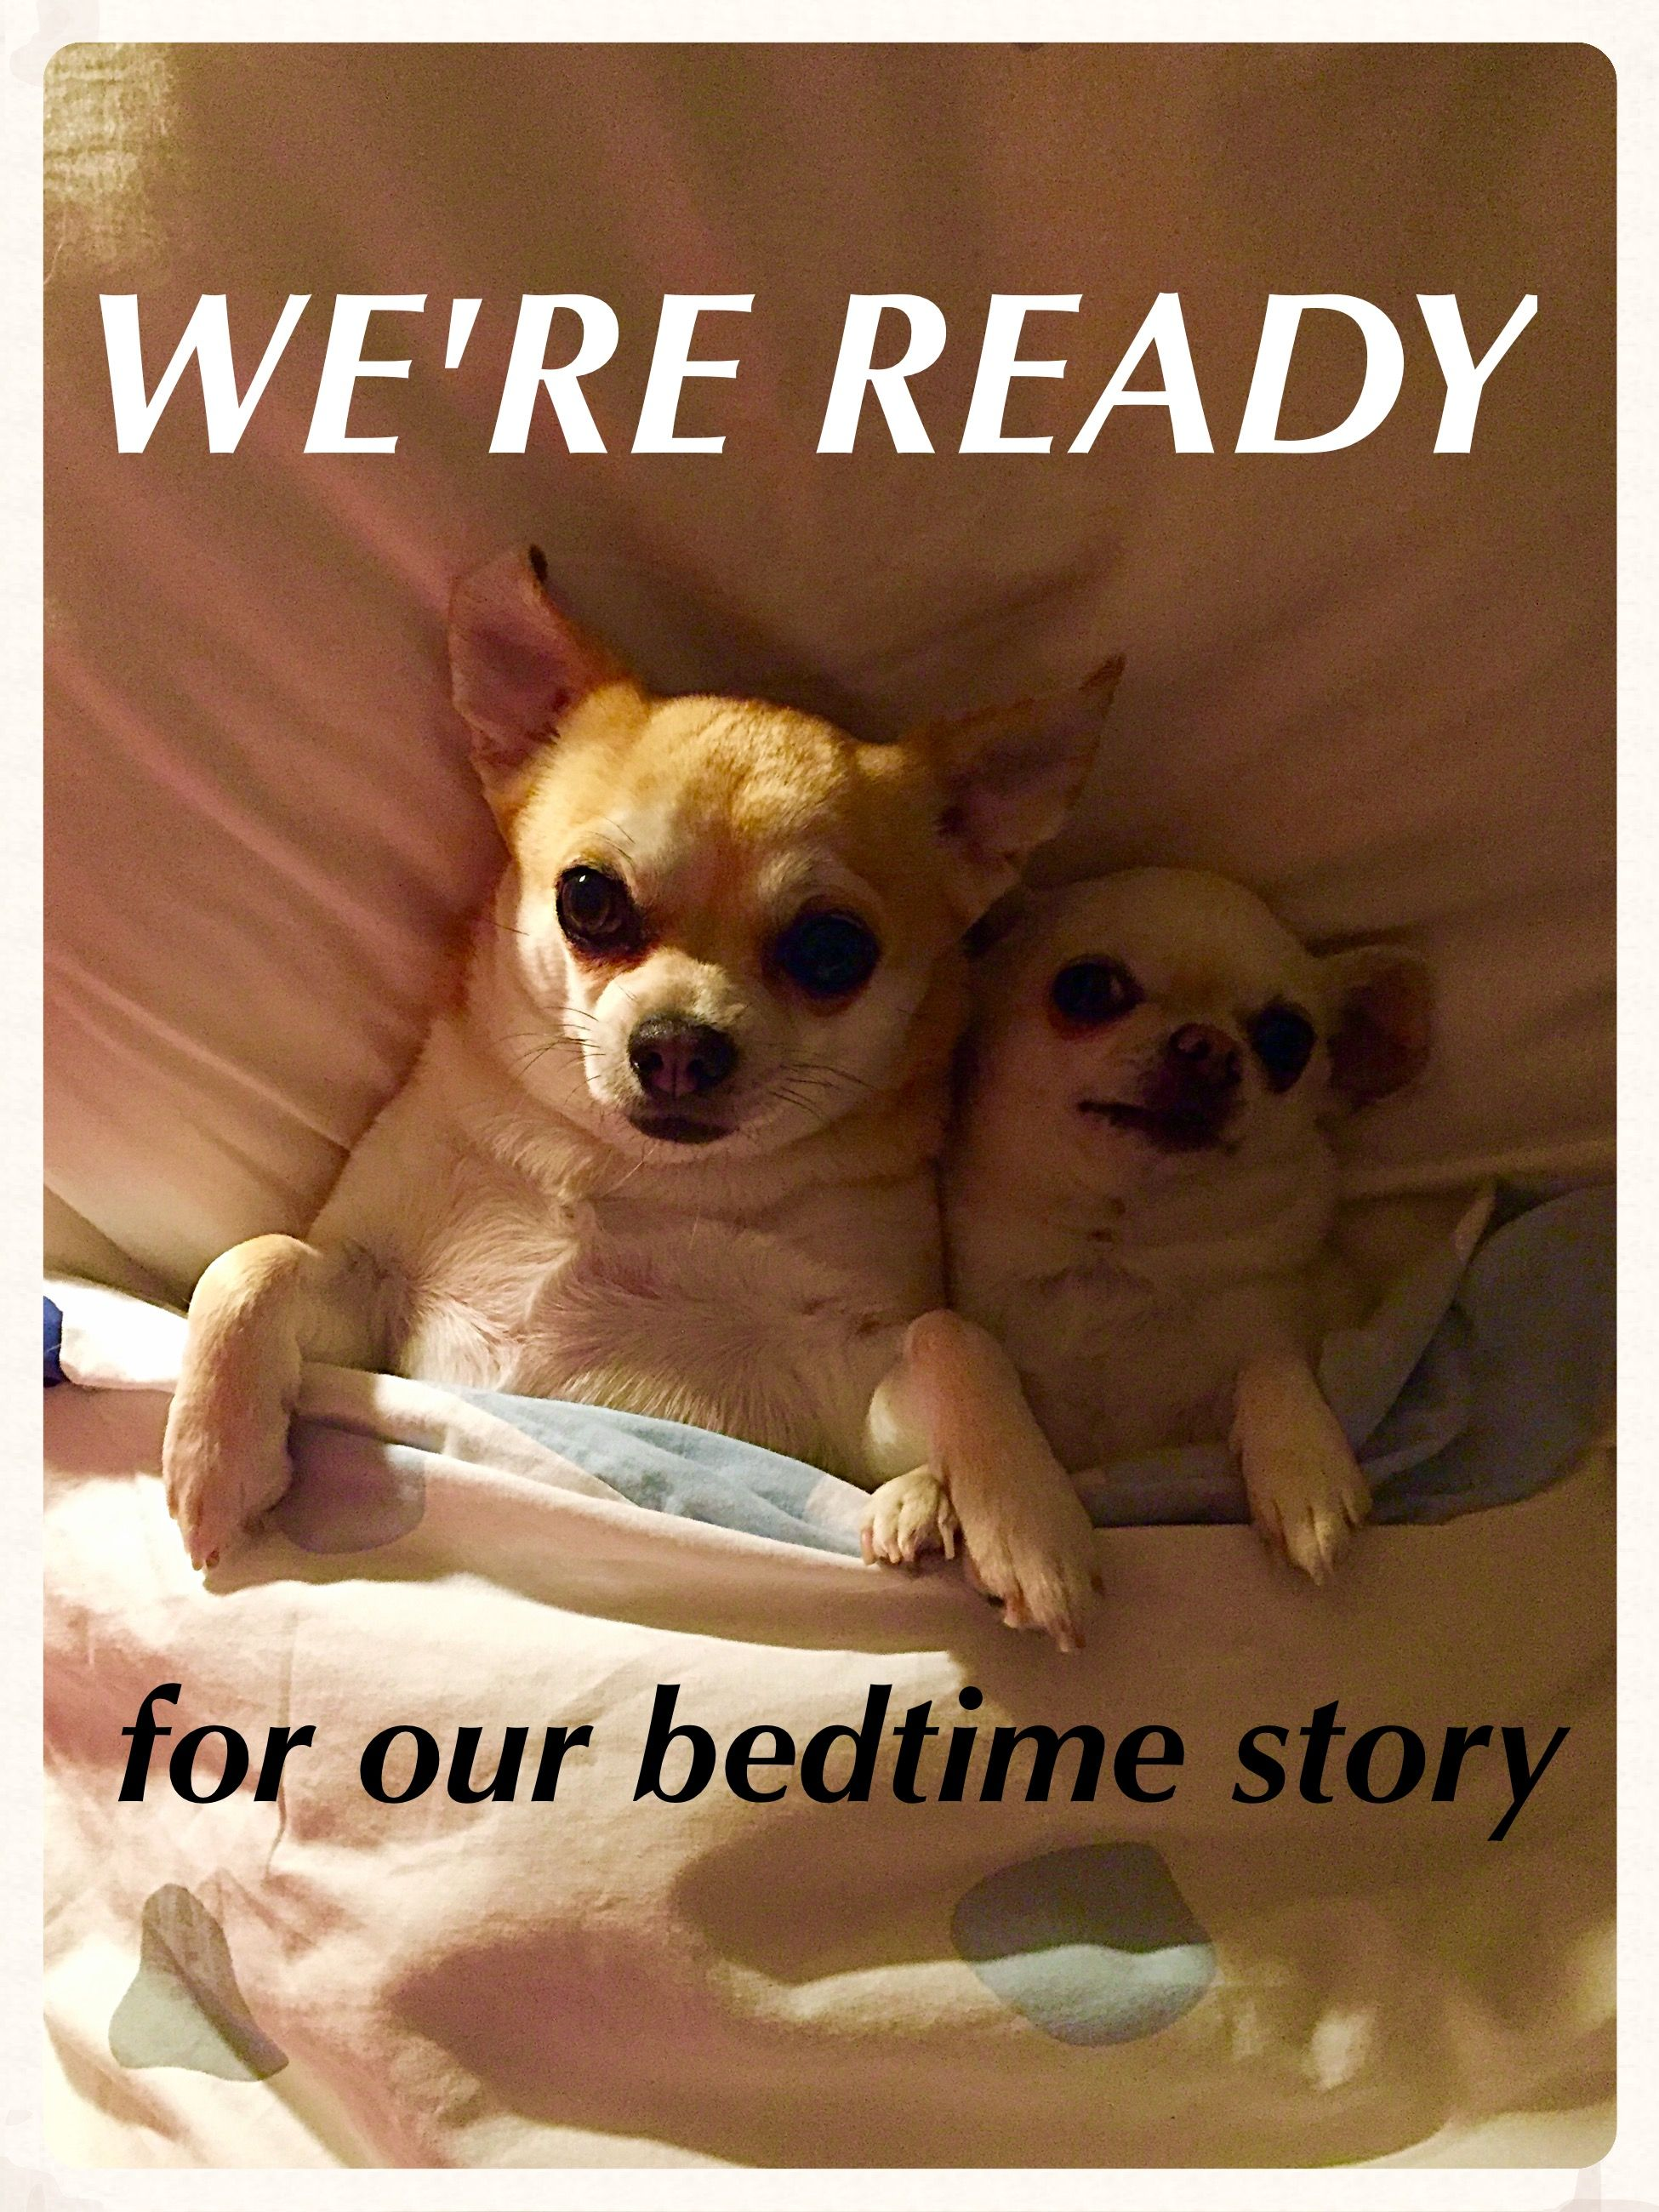 Once Upon A Time There Were Two Spoiled Chihuahuas